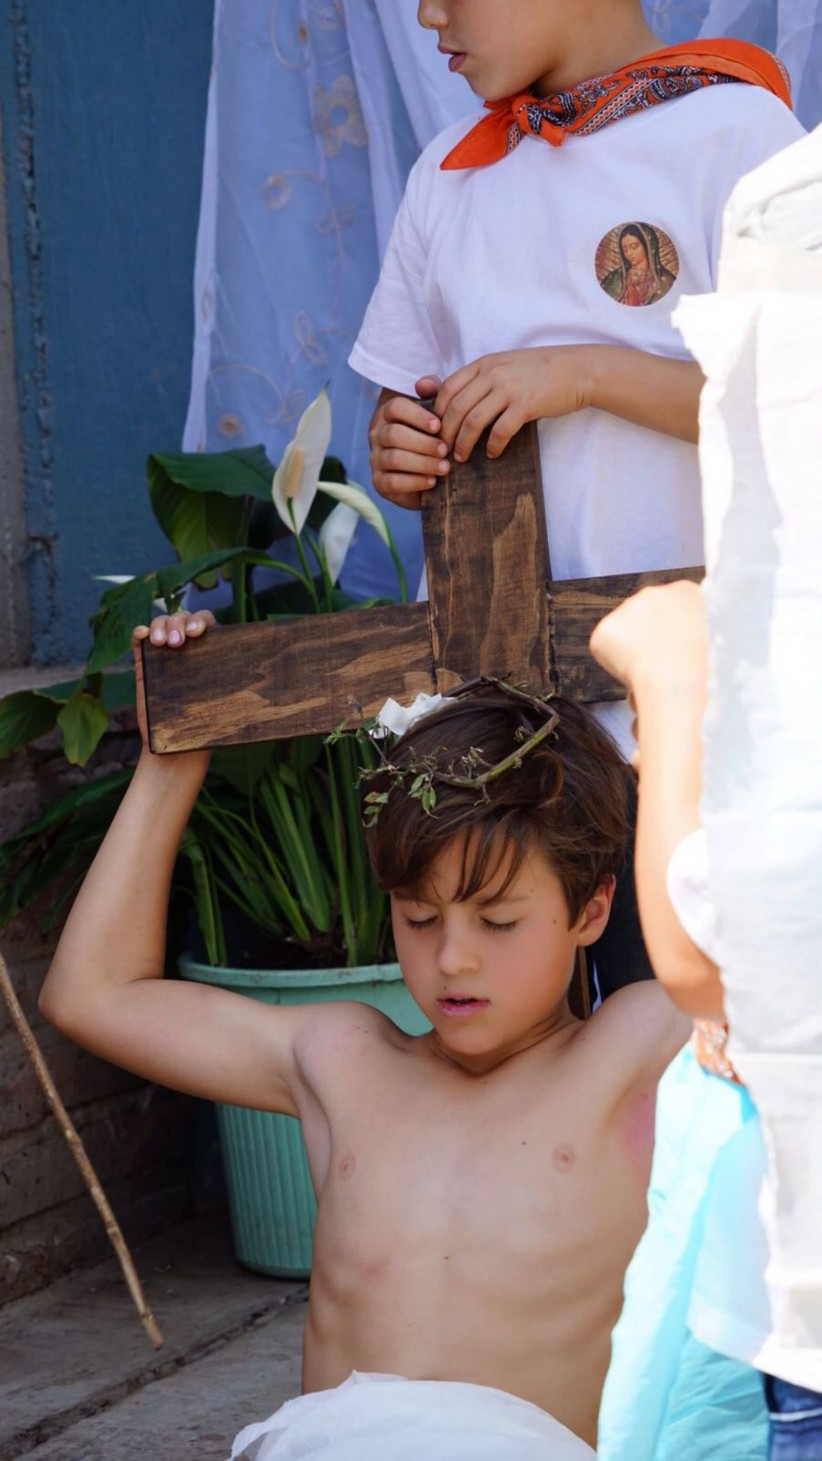 Via crucis interpretado por niños